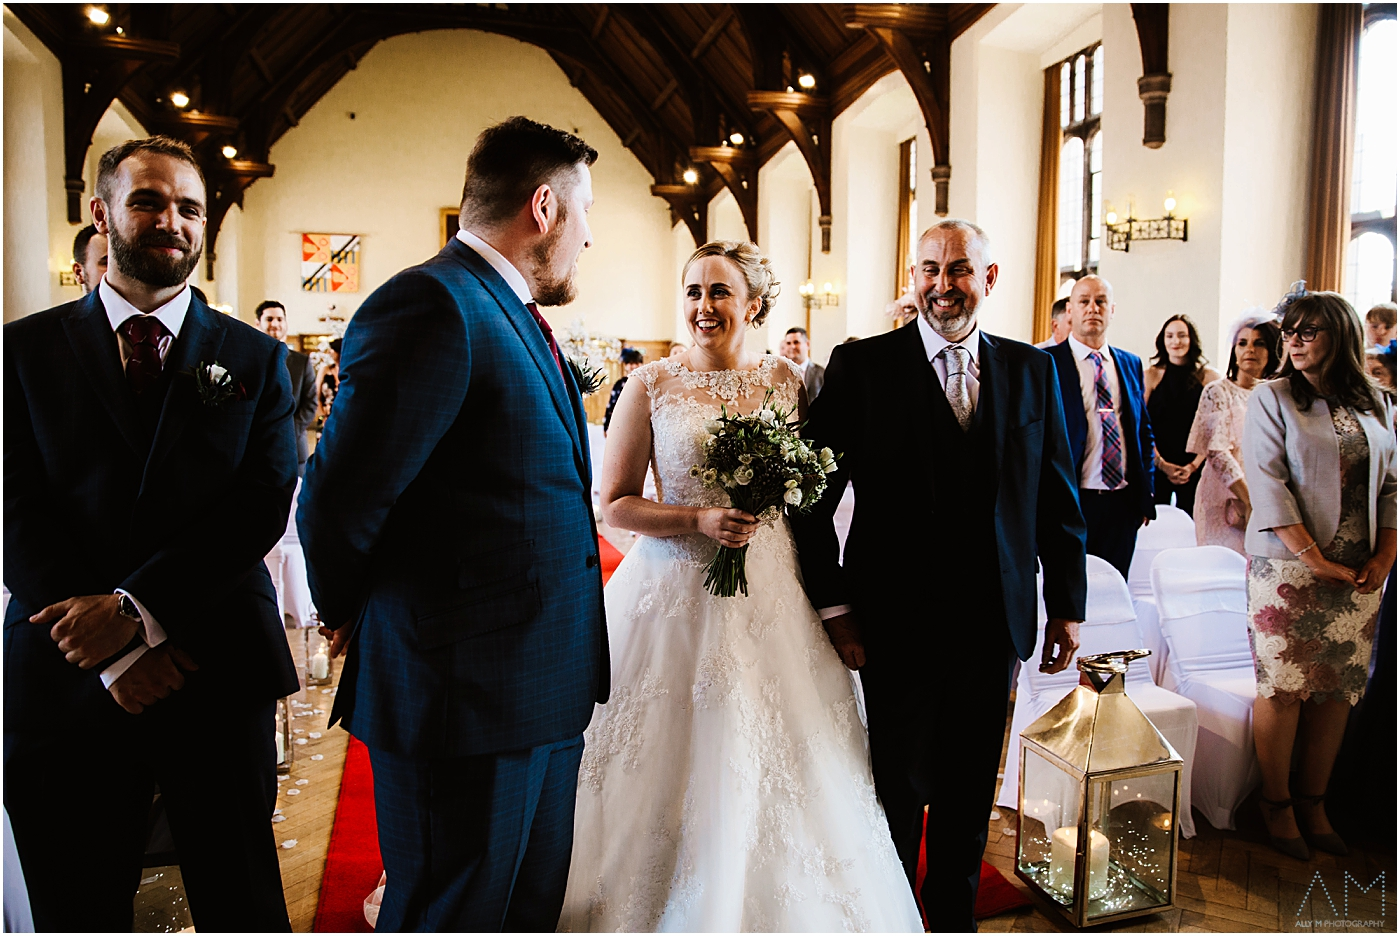 Bride and groom see each other for the first time at the wedding venue